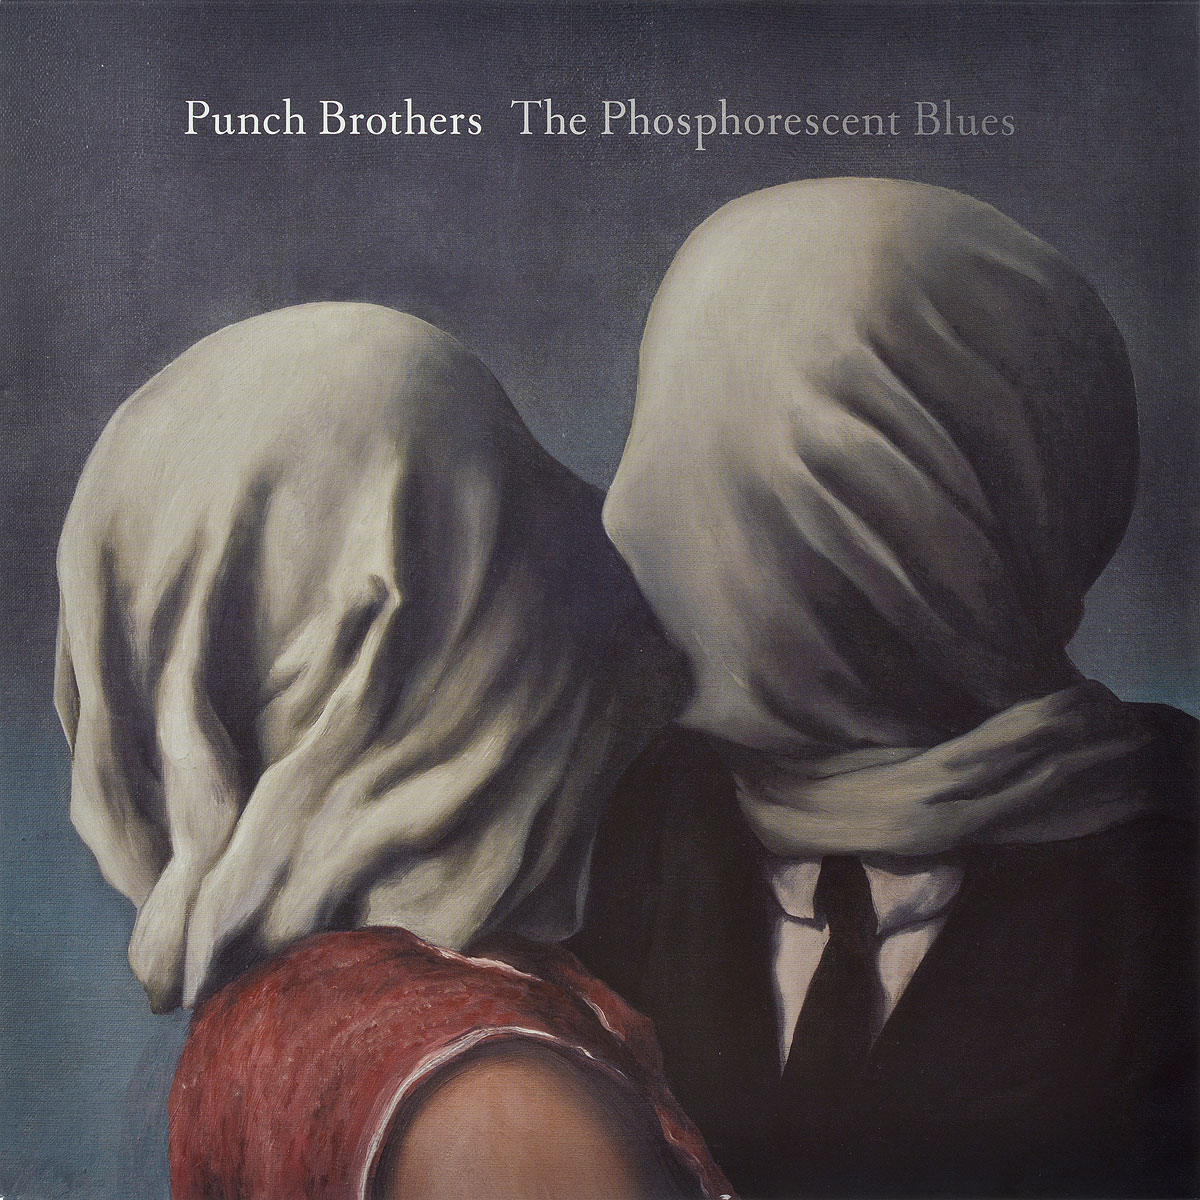 Punch Brothers Punch Brothers. The Phosphorescent Blues (2 LP)